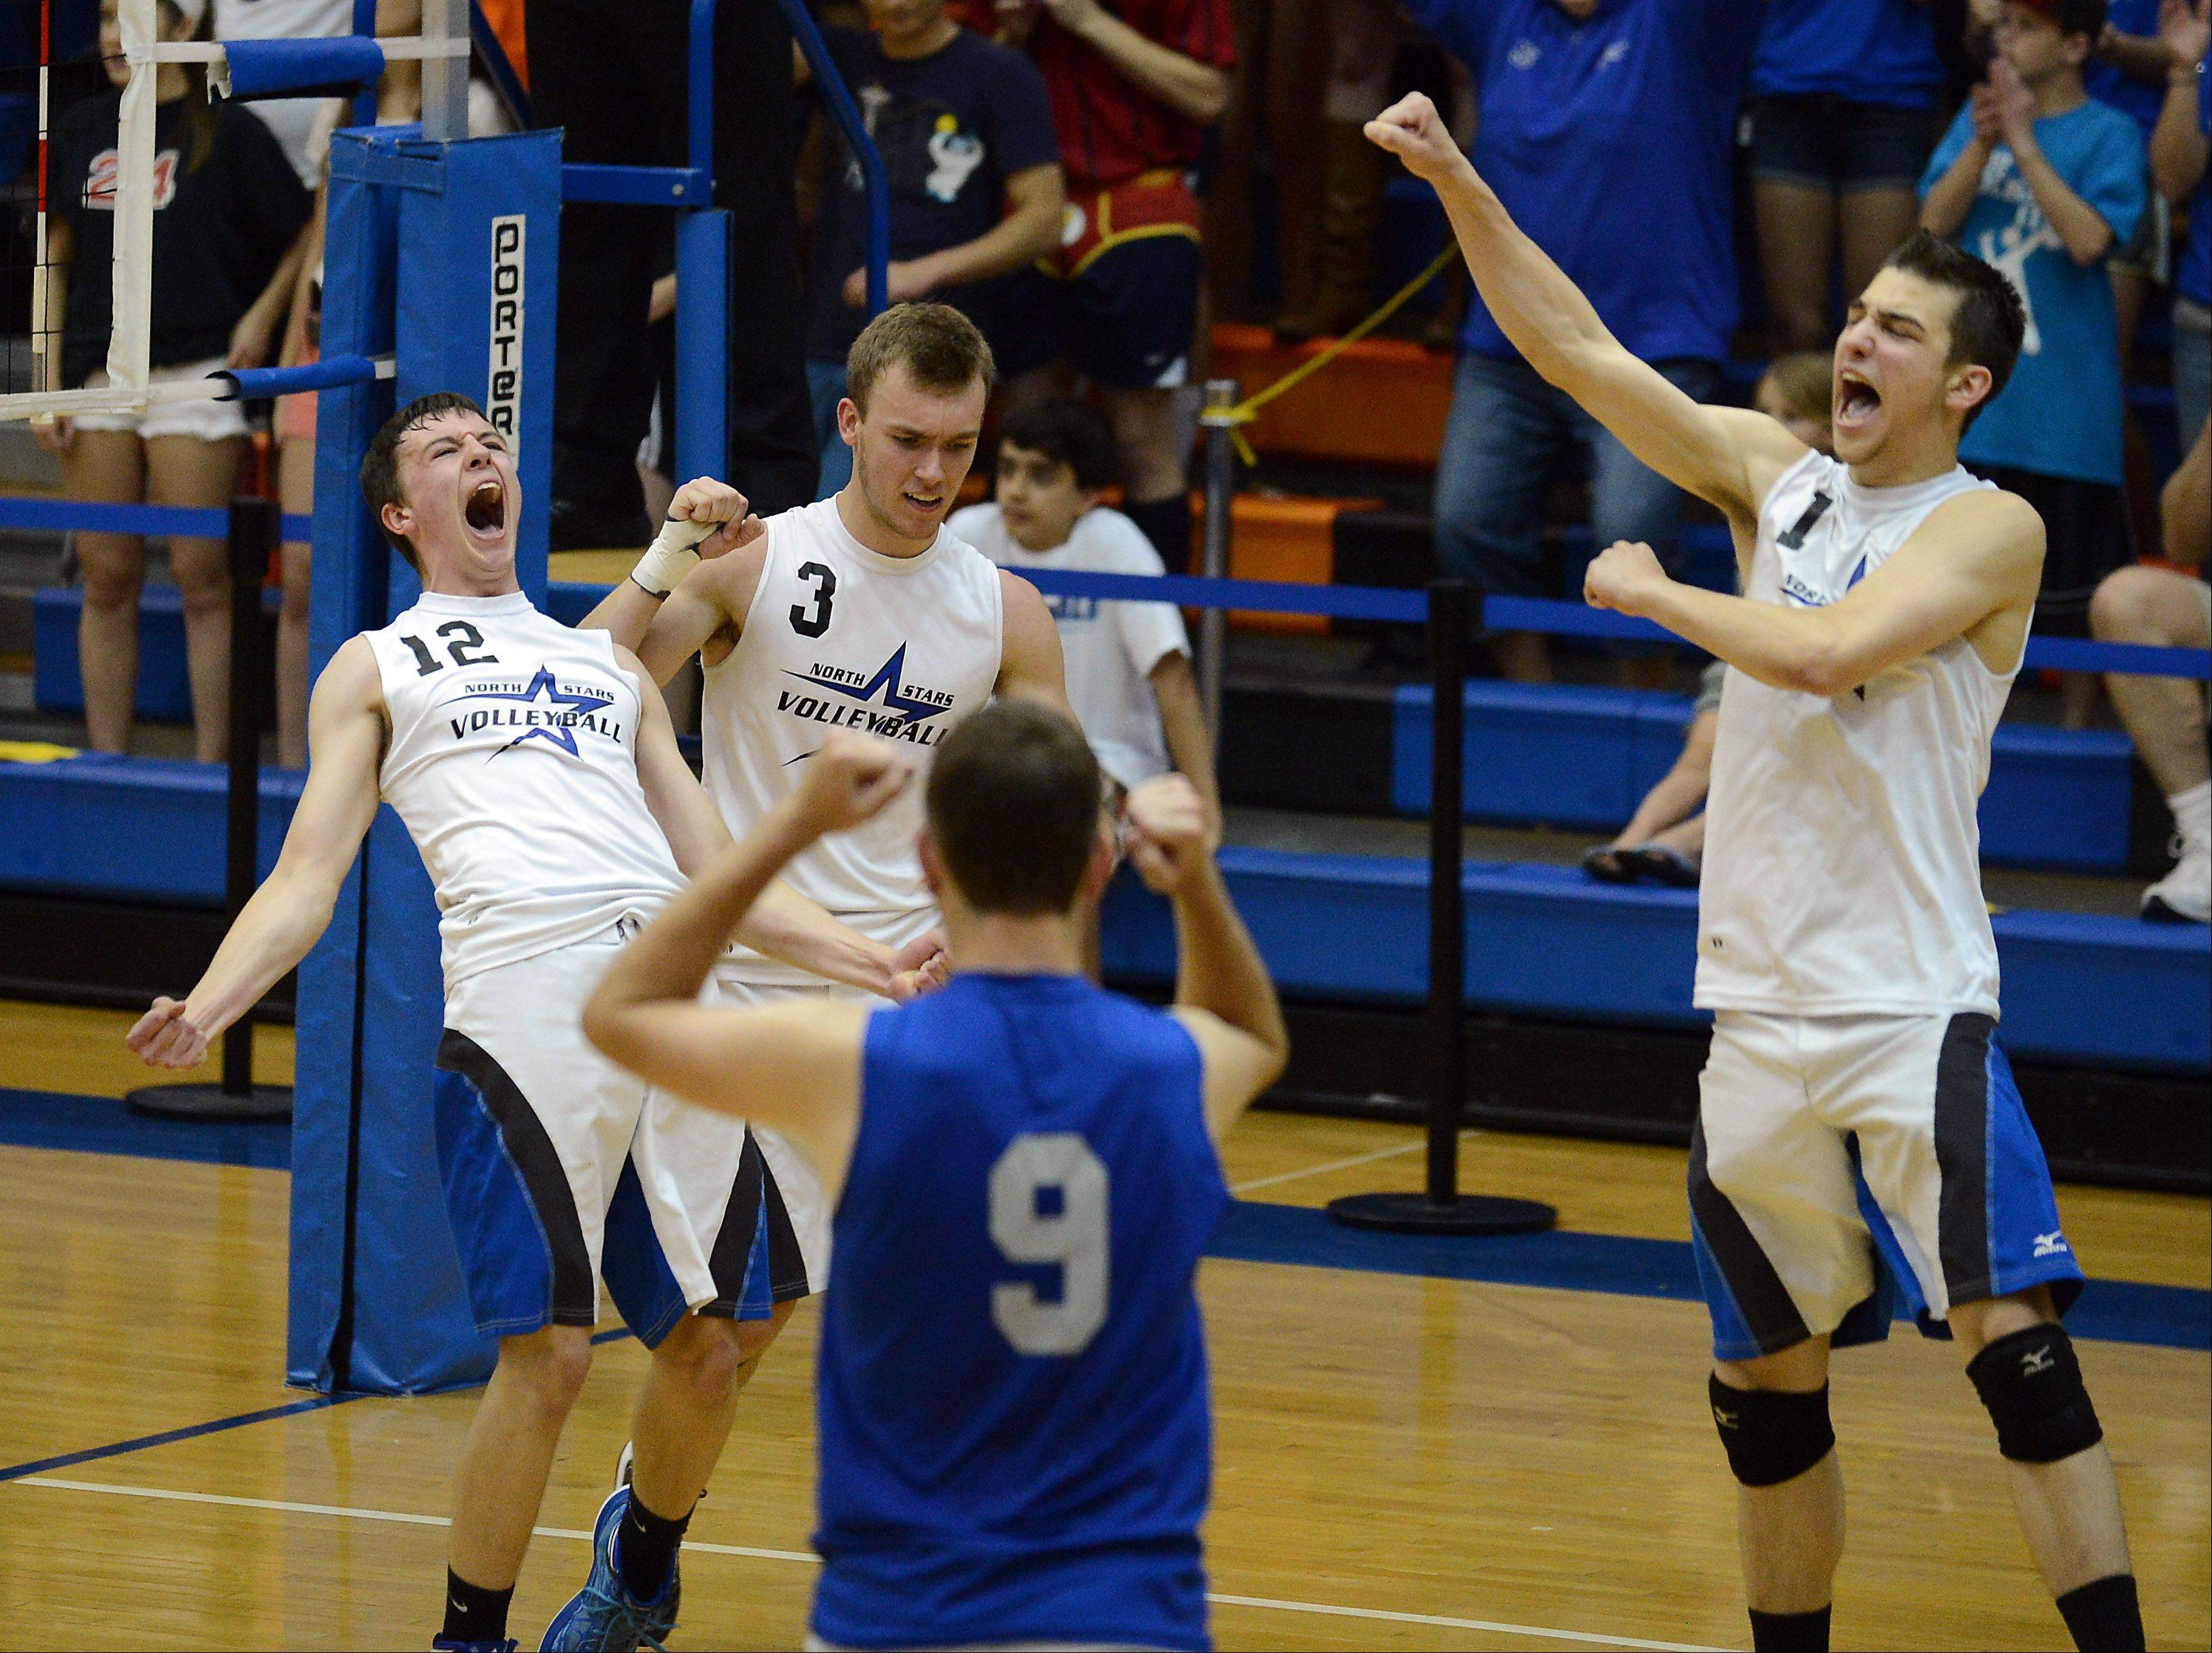 St. Charles North's Jake Hamilton and the rest of his teammates celebrate a point late in the third game heading towards their victory over Oak Park-River Forest in the best of three games at the boys volleyball state finals 2013 at Hoffman Estates High School on Friday.